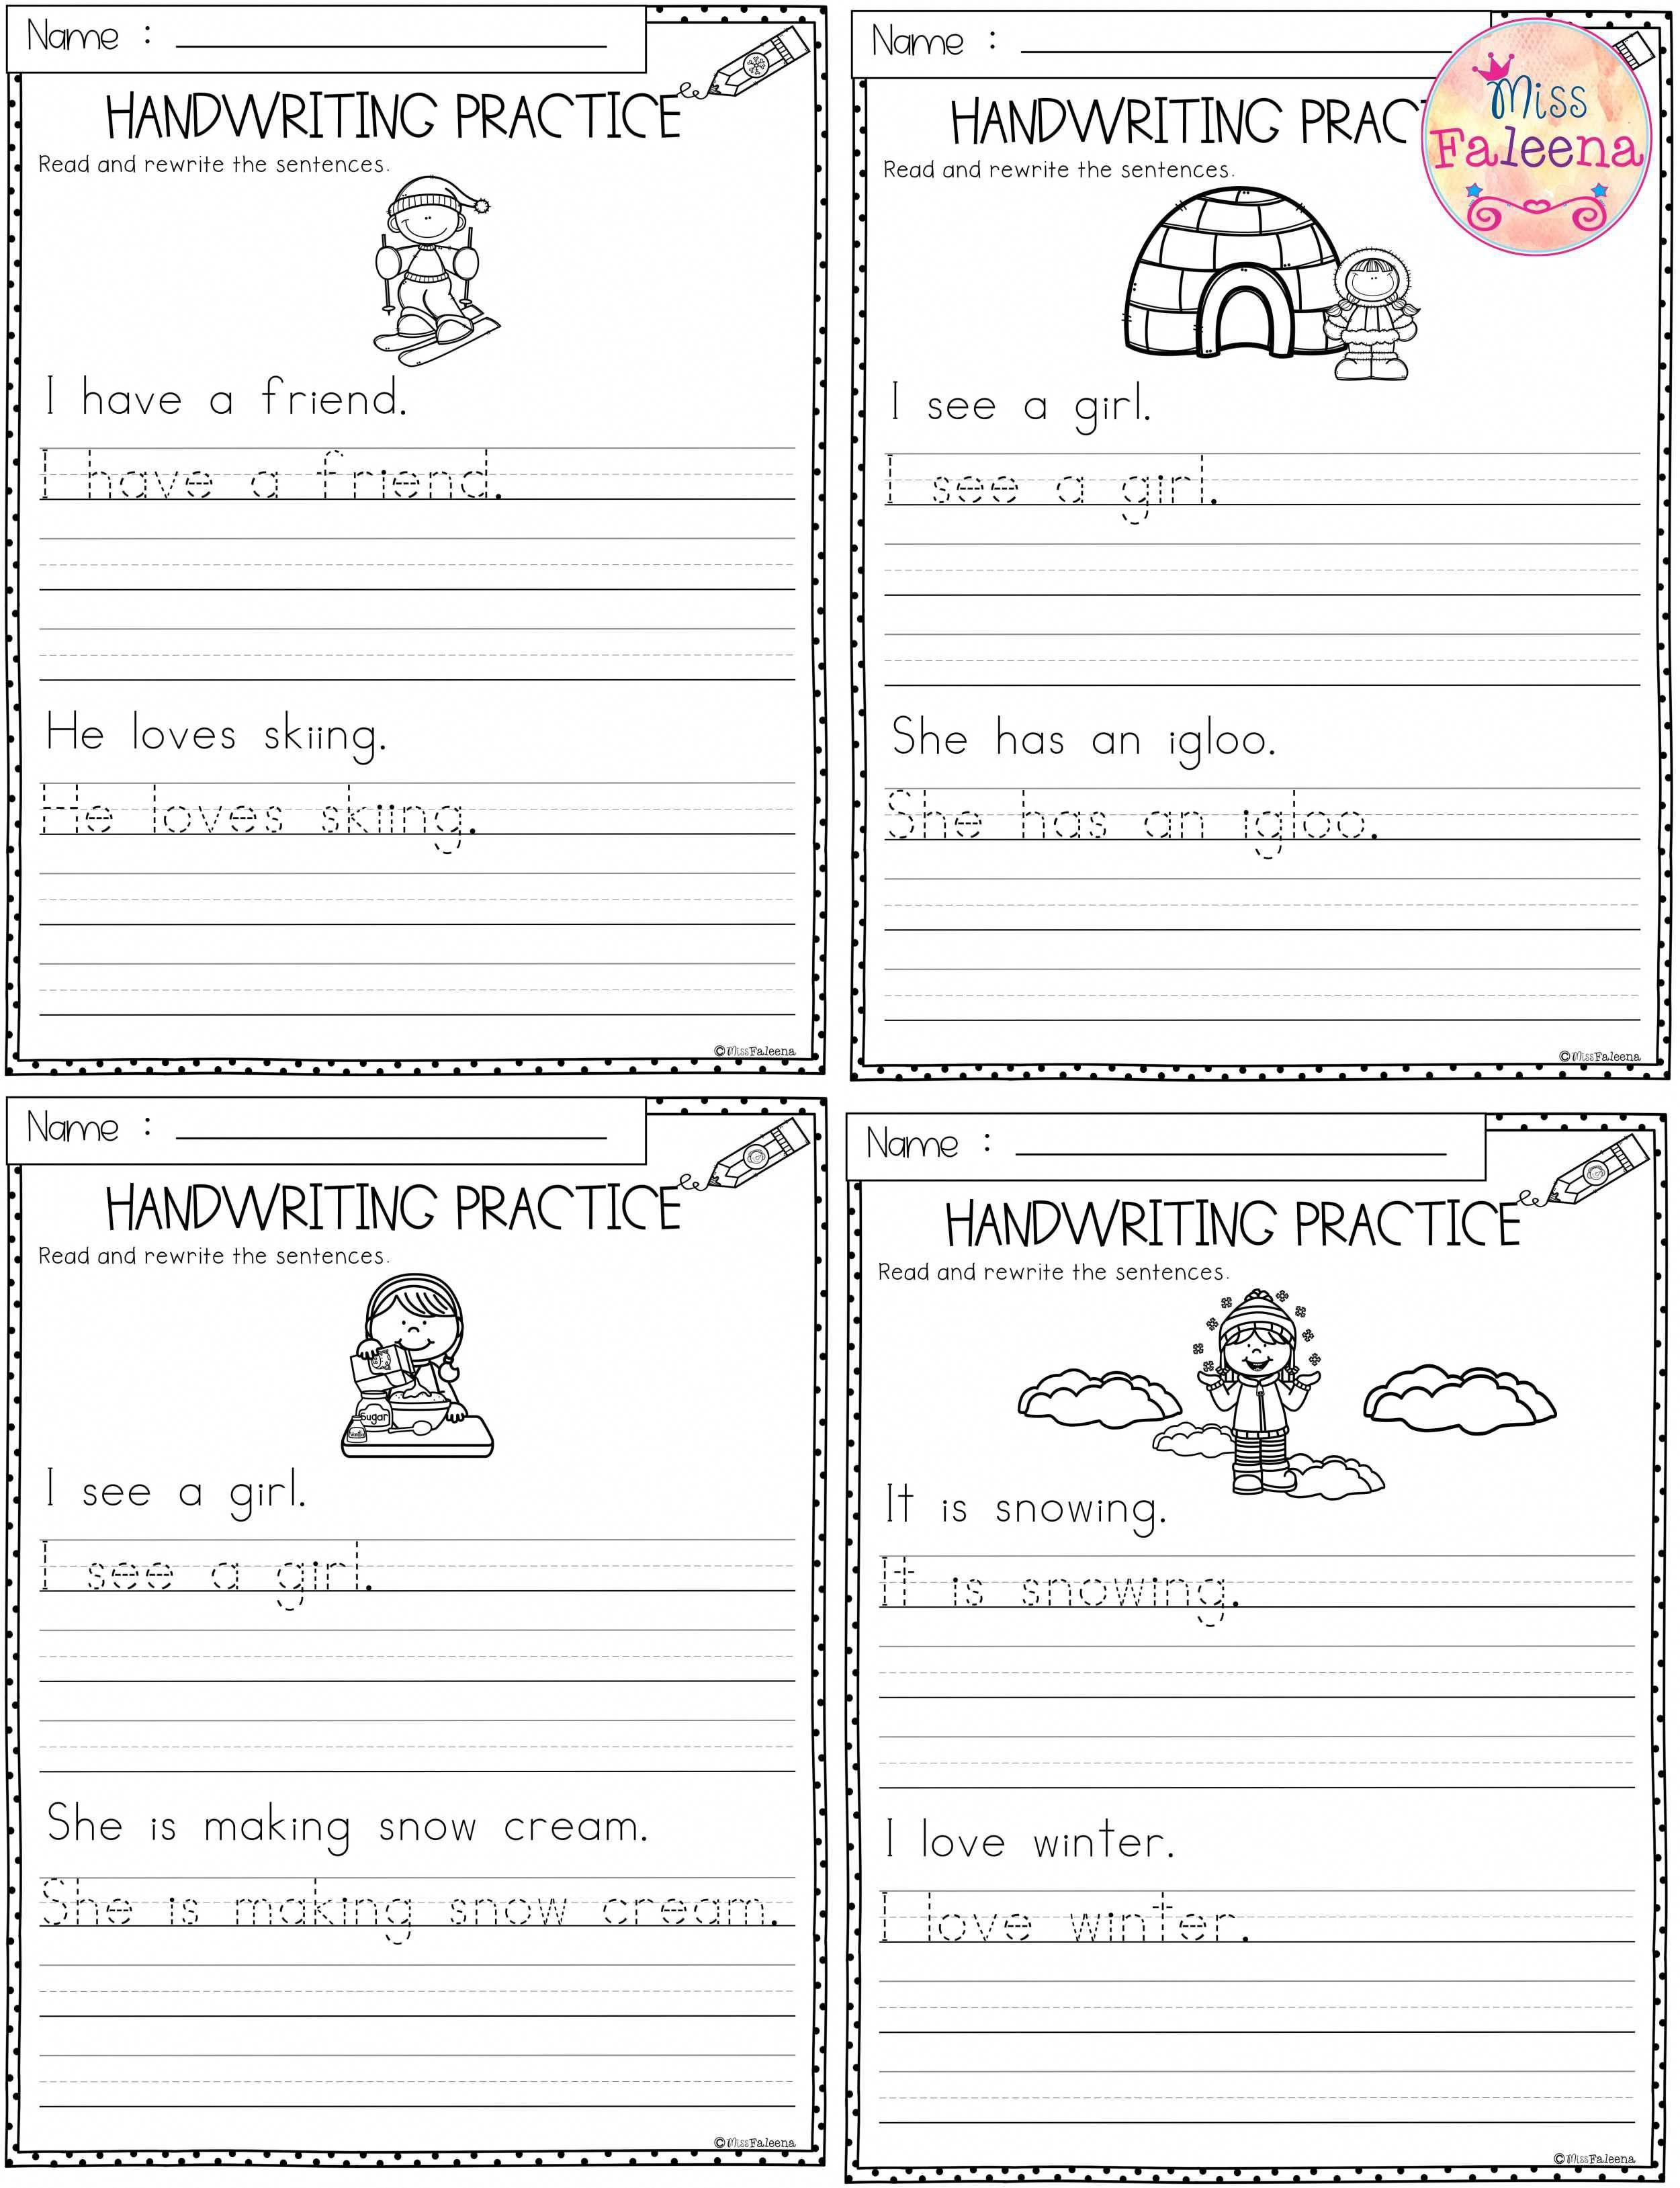 Improve Handwriting Handwritingimprovement